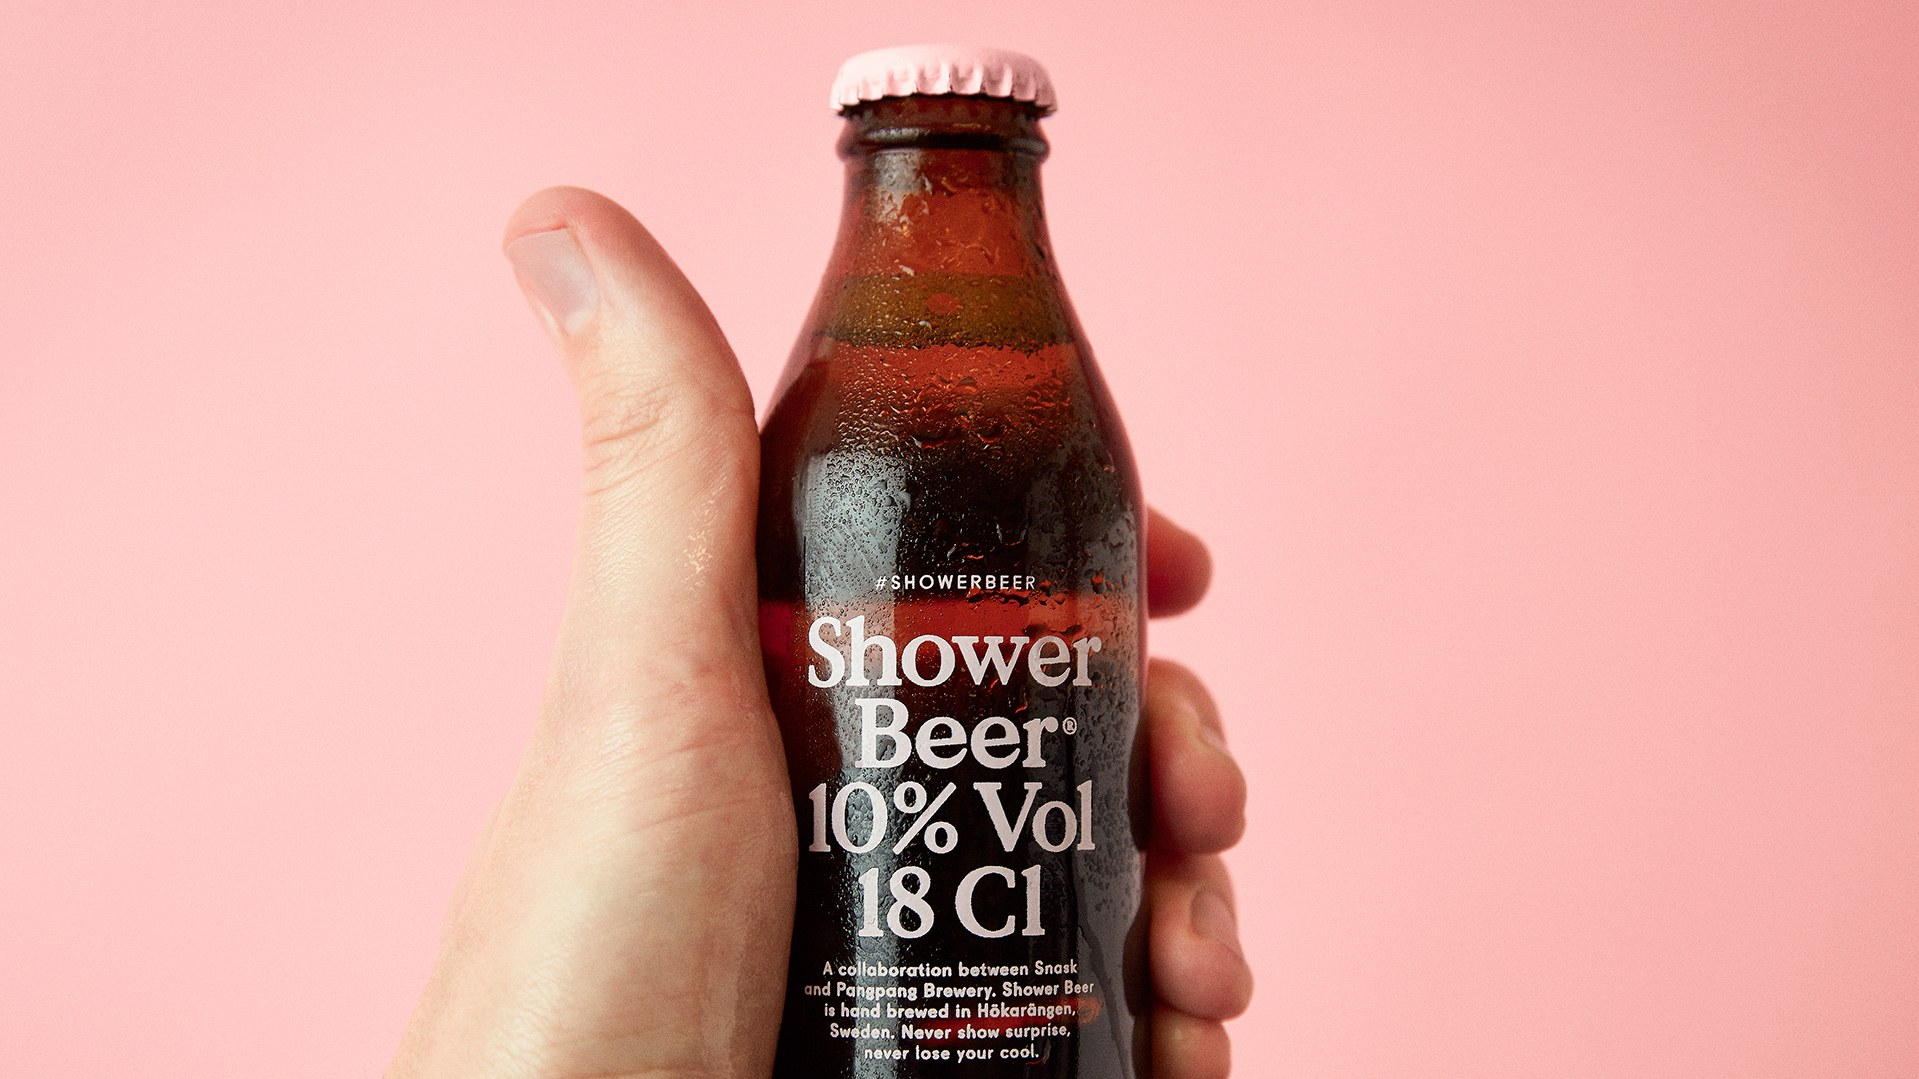 The Shower Beer.